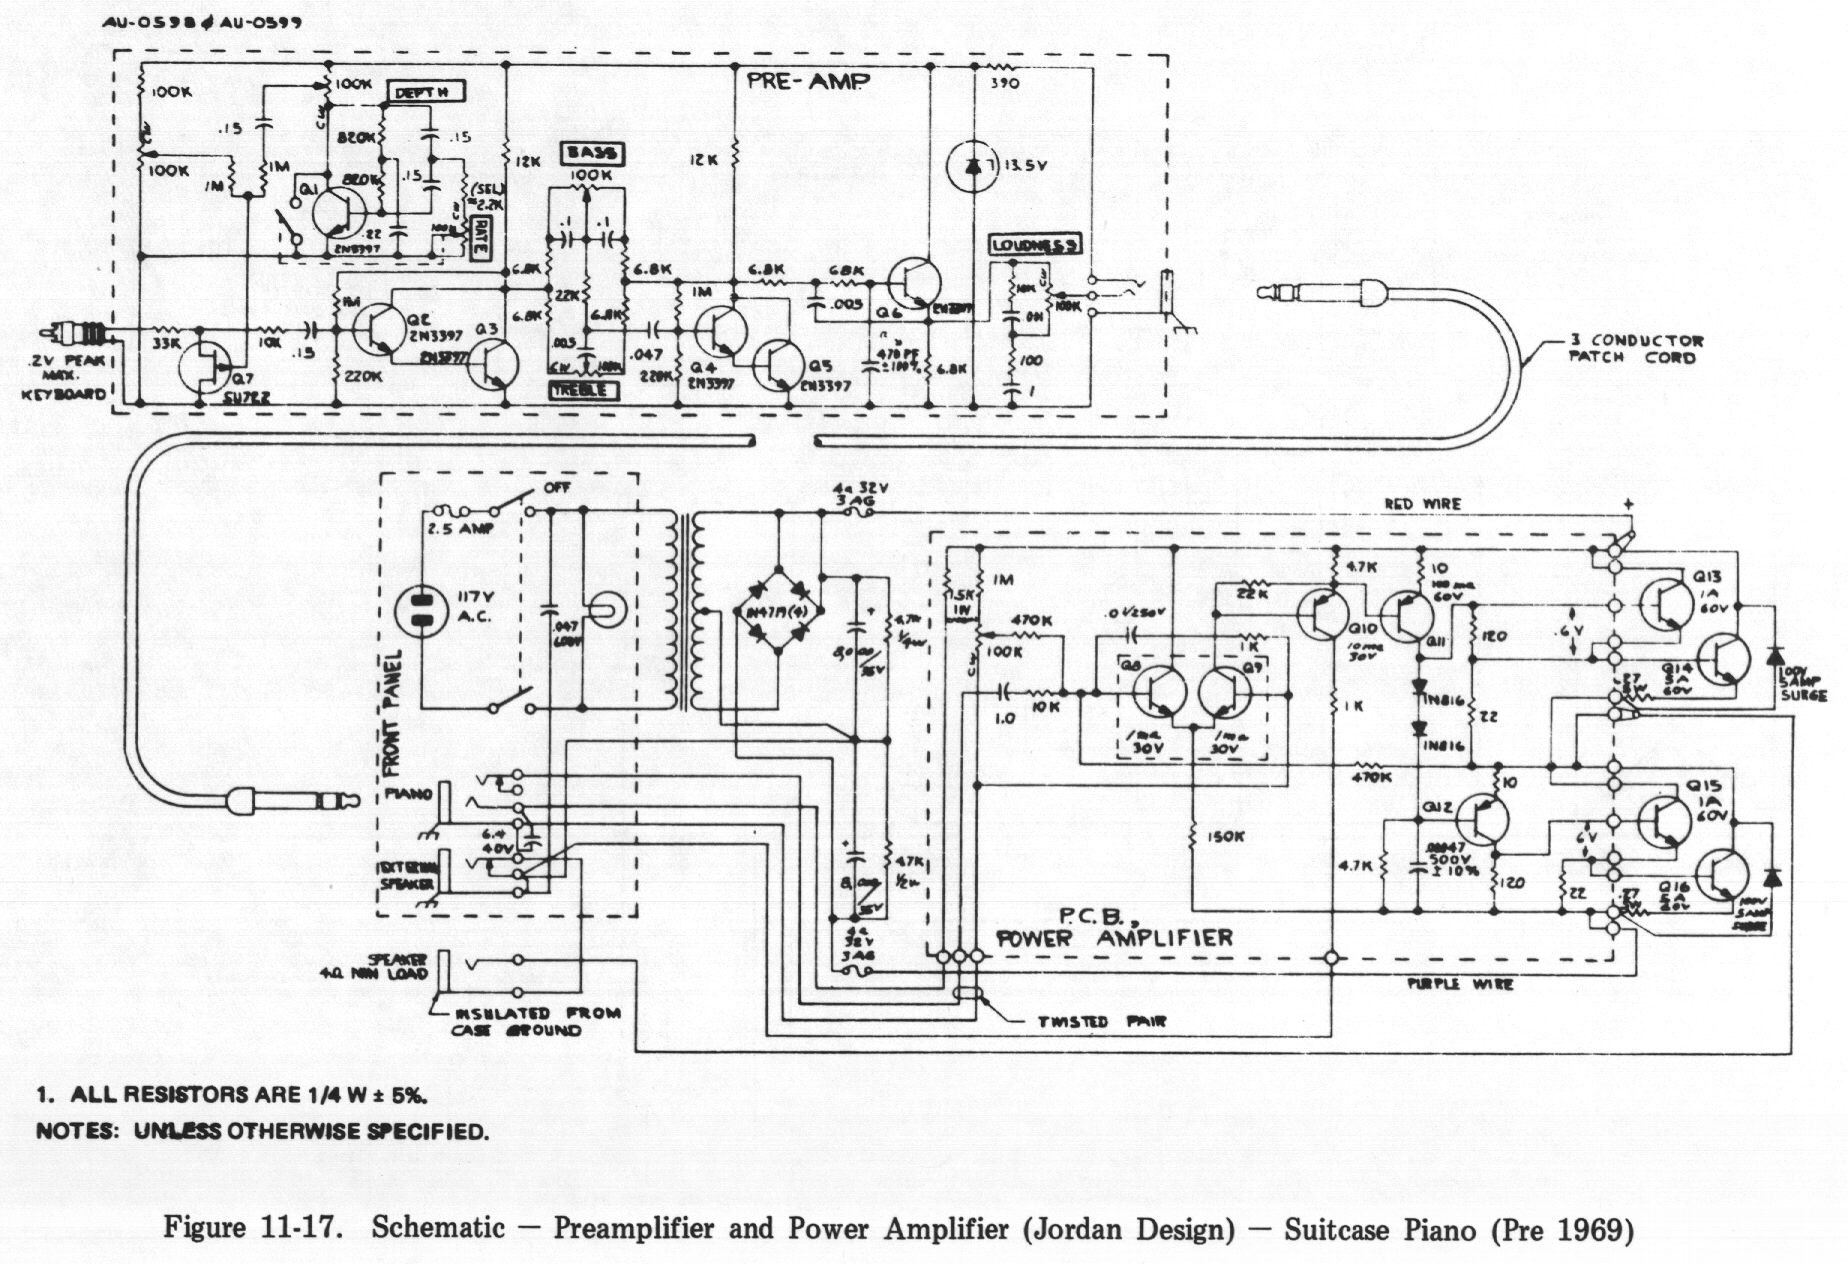 Chapter 11: Diagrams, Schematics and Pictorials on diagramming software, tube map, straight-line diagram, cross section, one-line diagram, block diagram, technical drawing, control flow diagram, data flow diagram, functional flow block diagram, function block diagram, schematic capture, piping and instrumentation diagram, ladder logic, electronic design automation, circuit diagram,